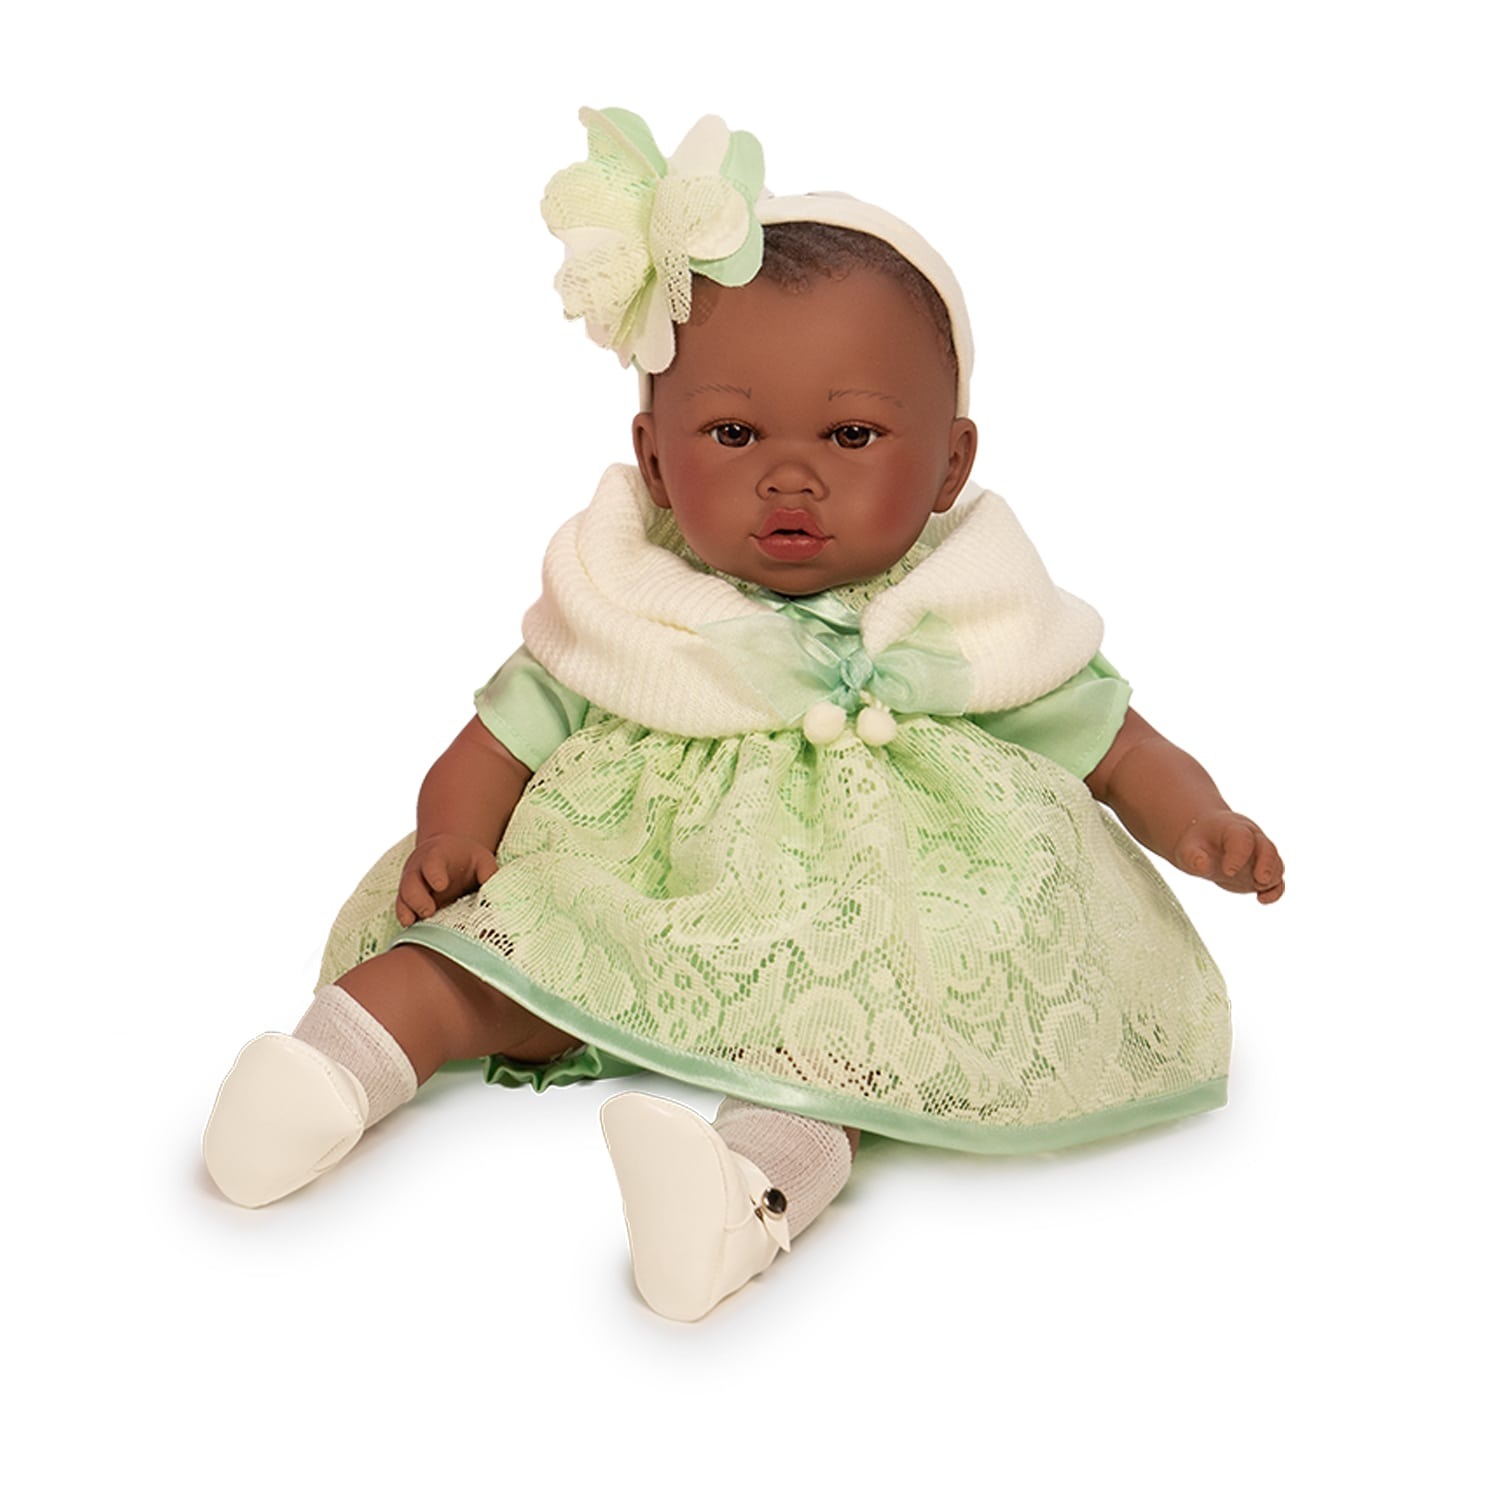 D'Nines Play Doll Kaylee Mary Shortle